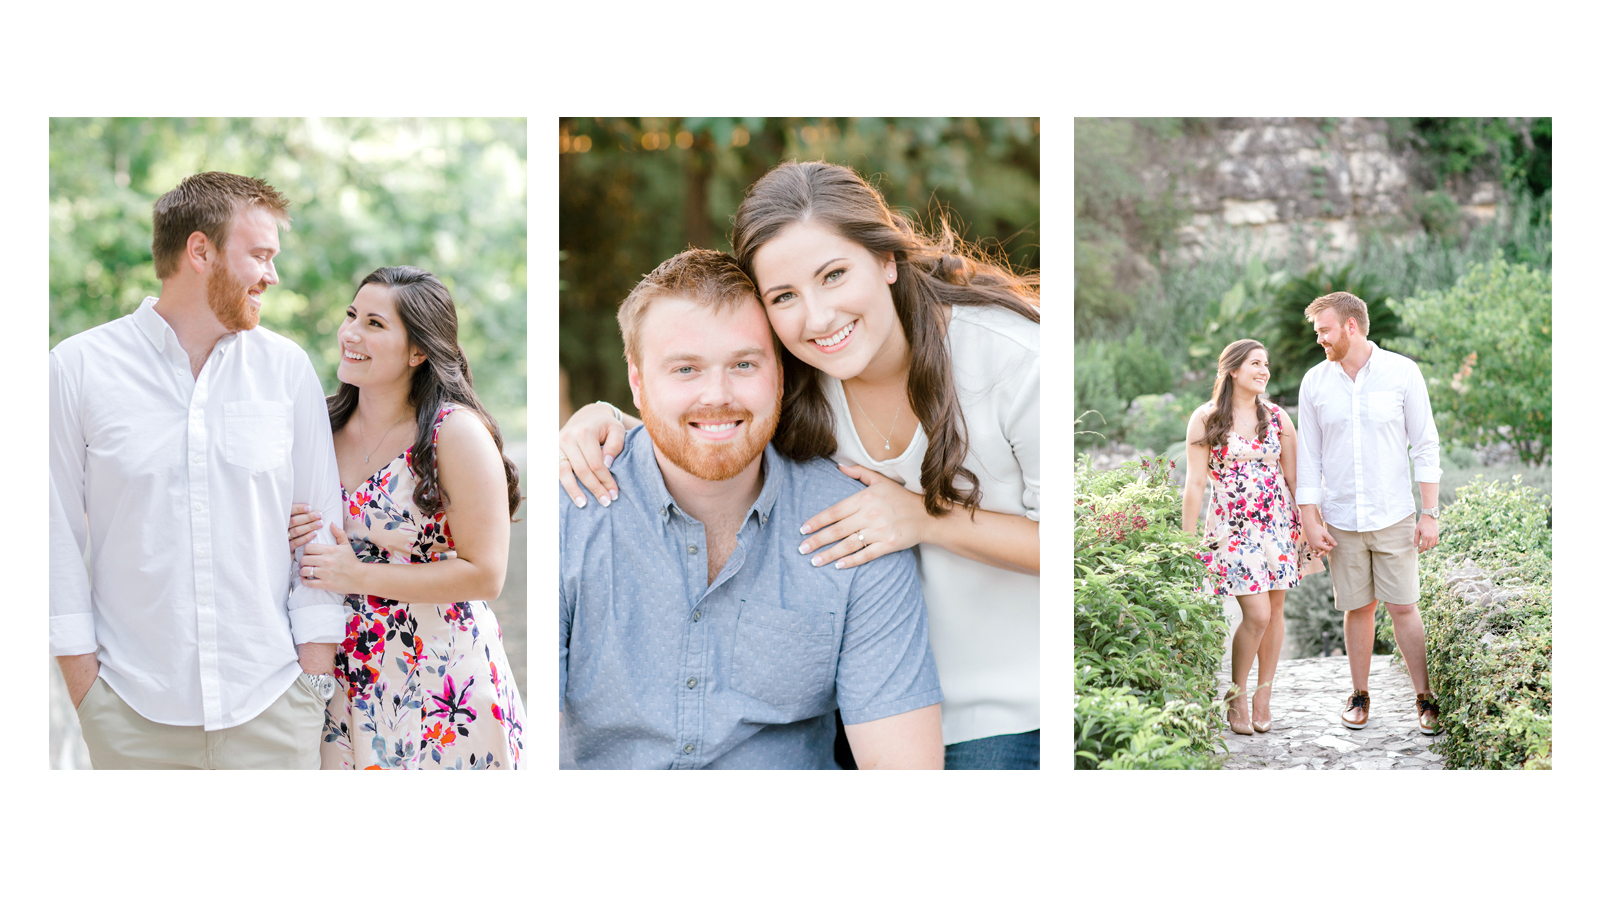 Michele with one L Photography San Antonio Texas Engagement.jpg